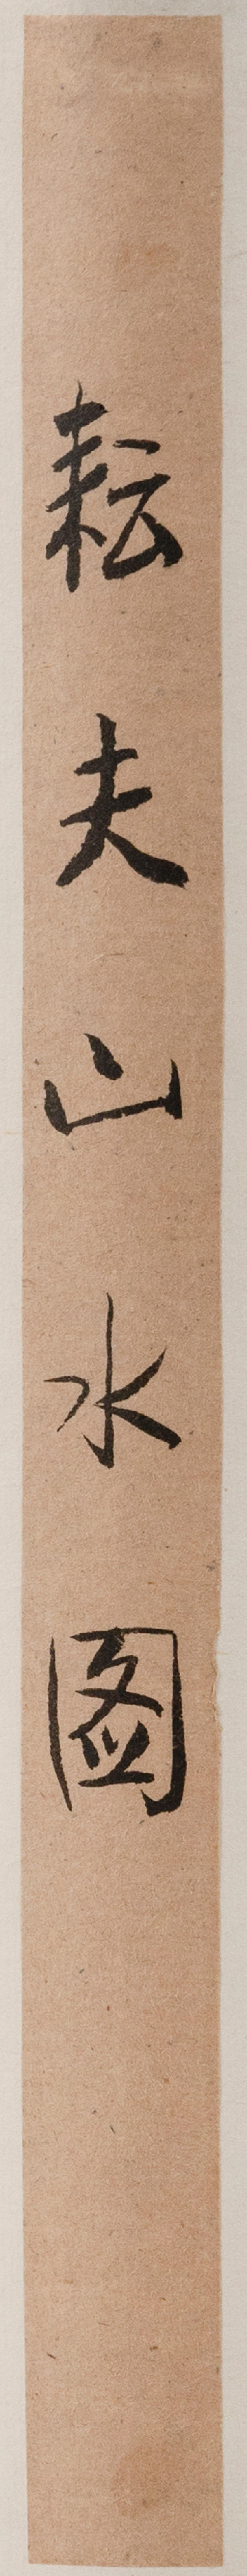 CHINESE SCROLL PAINTING ON PAPER Depicts birds in flight through mountains and gorges. Signed and seal marked. 26.25